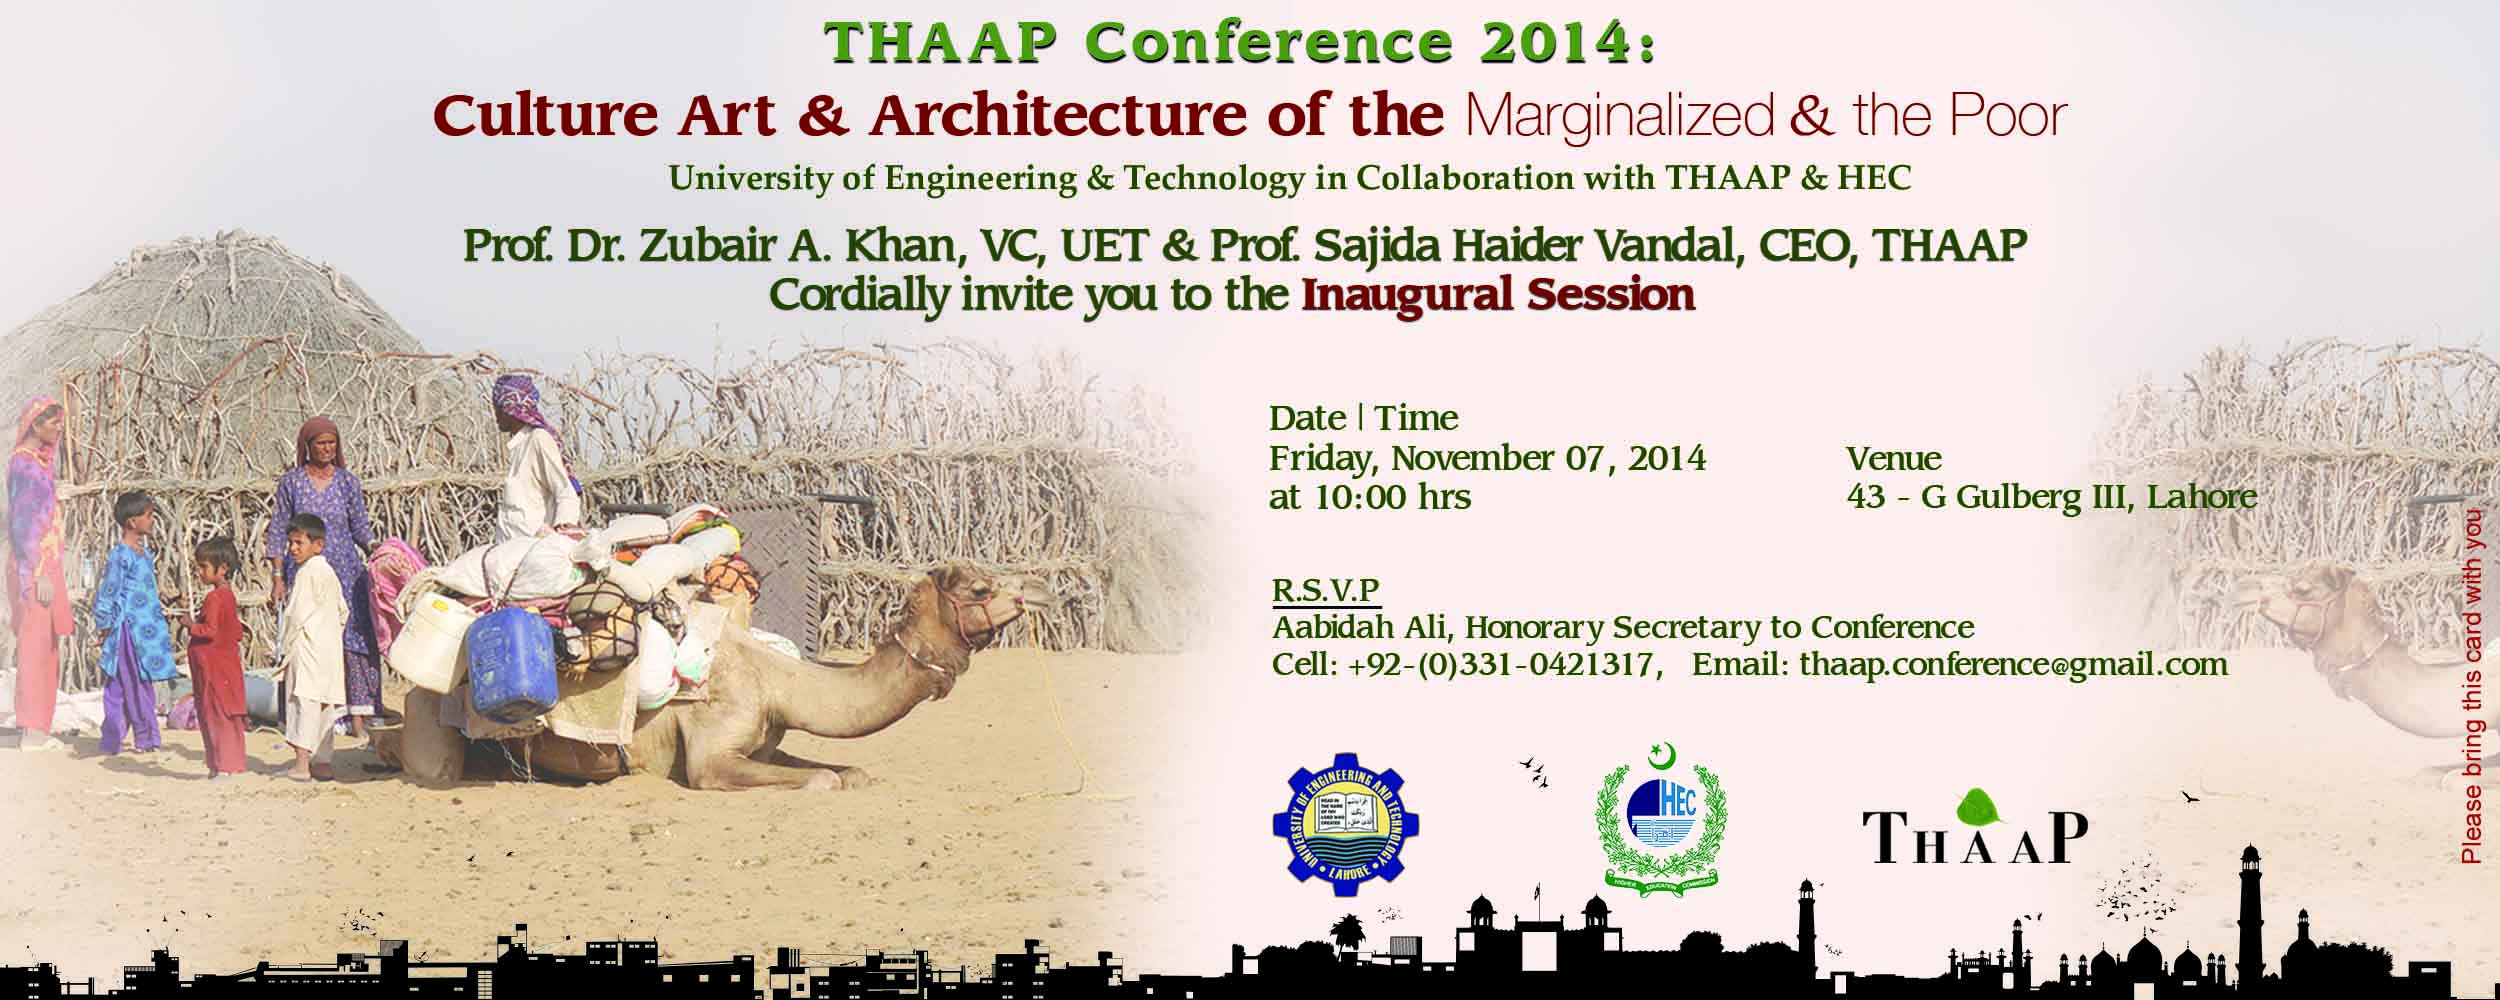 You Are Cordially Invited To Attend The 5th Thaap International Conference 2014 On Theme Culture Art And Architecture Of Marginalized